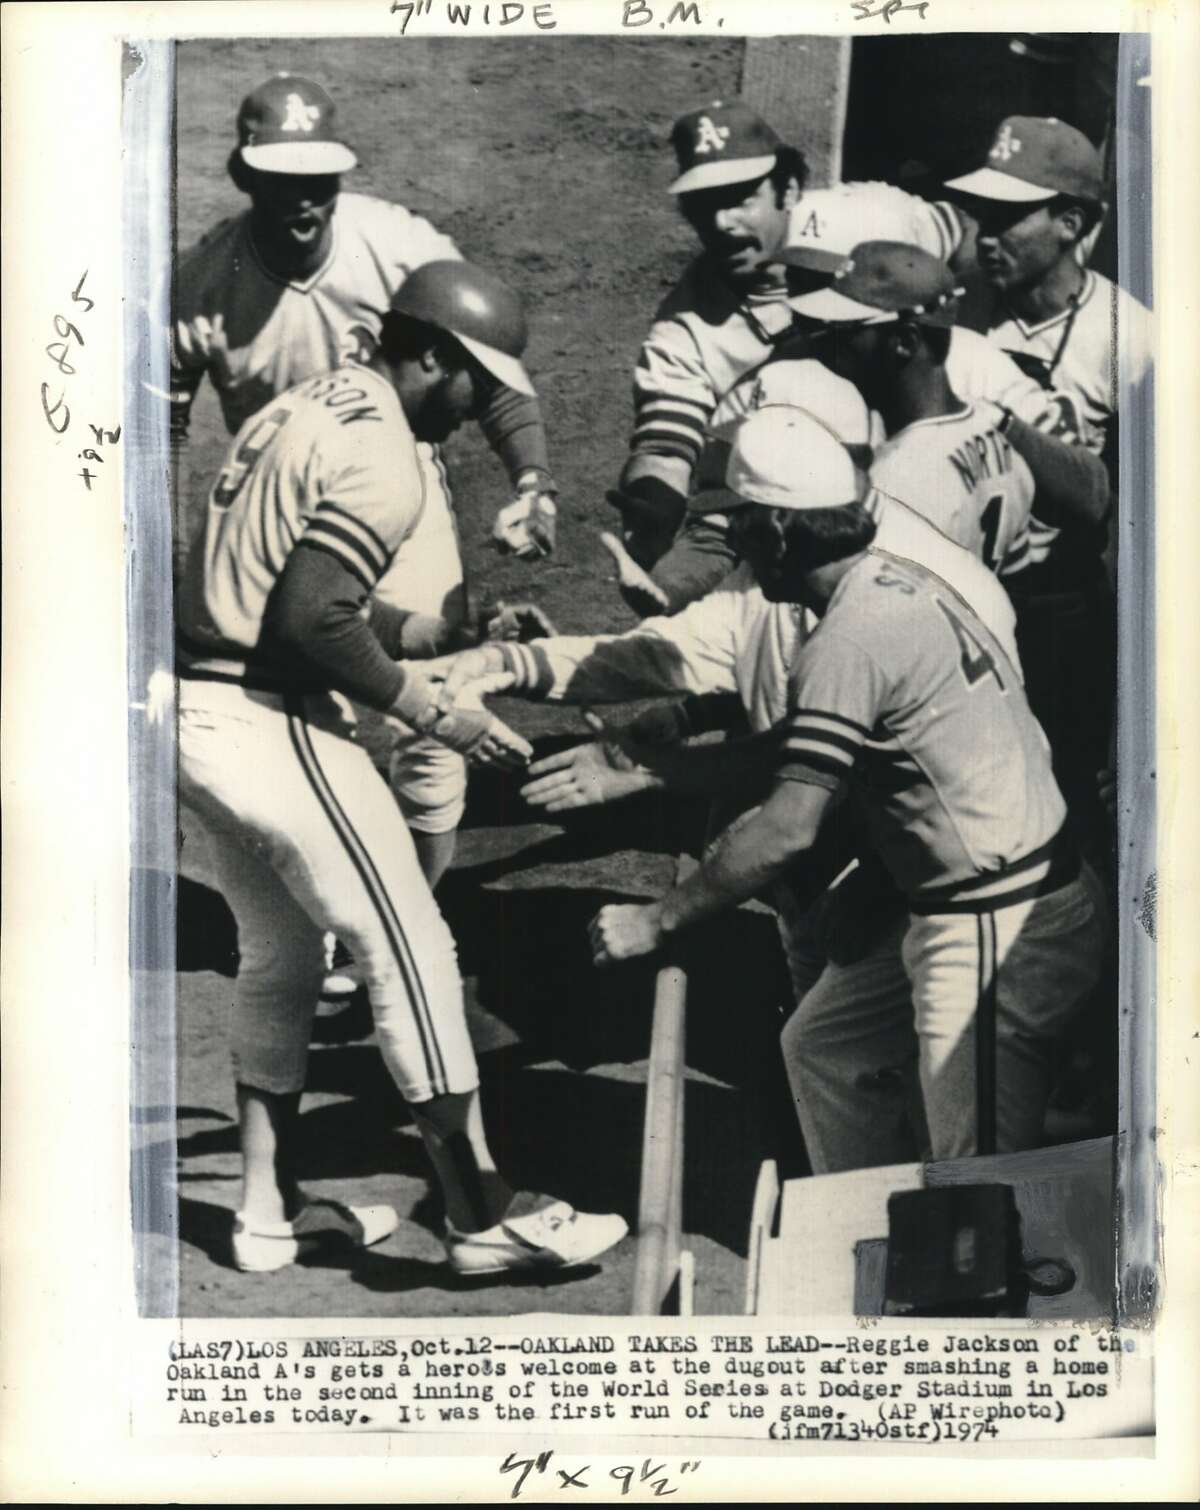 Baseball - World Series '74 (Jackson Homers). Los Angeles. Reggie Jackson of the Oakland A's gets a heroes welcome at the dugout after smashing a home run in the second inning of the World Series at Dodger Stadium in Los Angeles today. It was the first run of the game.